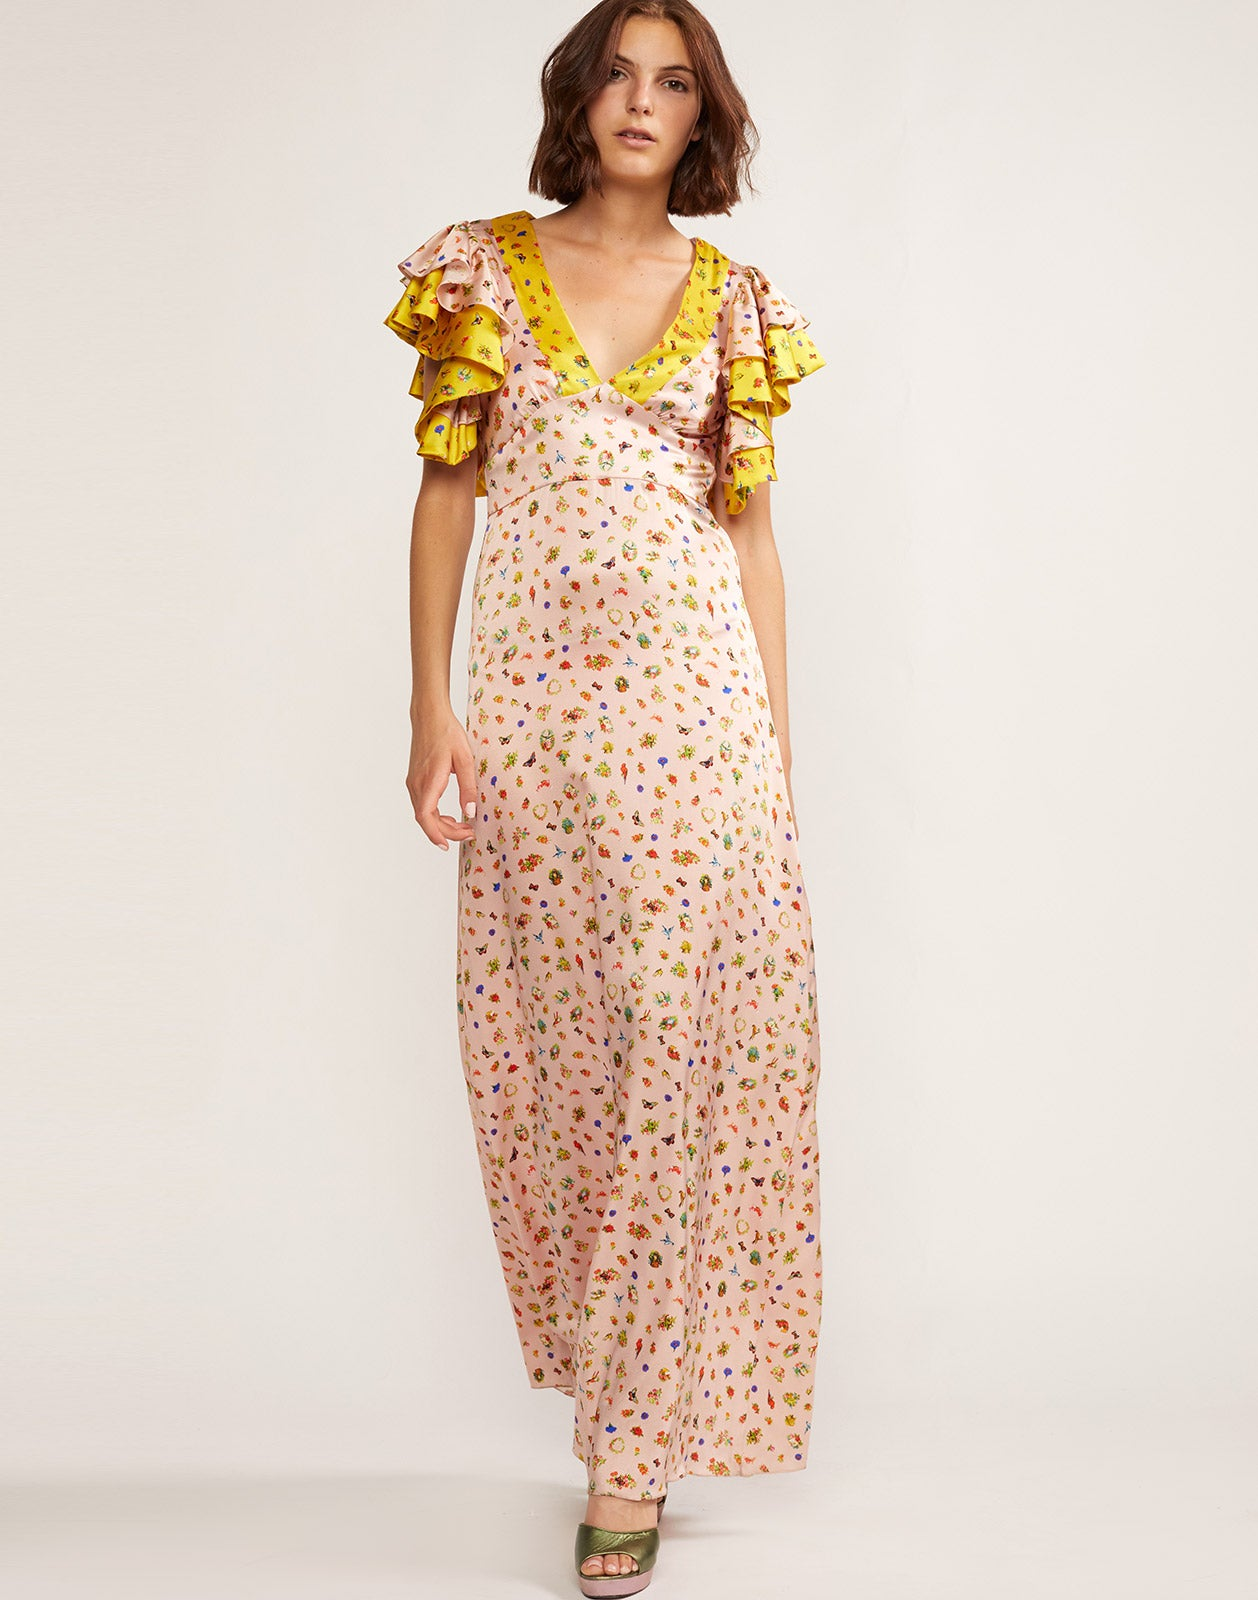 half off 749ac 1bba6 Cynthia Rowley - The Official Cynthia Rowley Online Shop